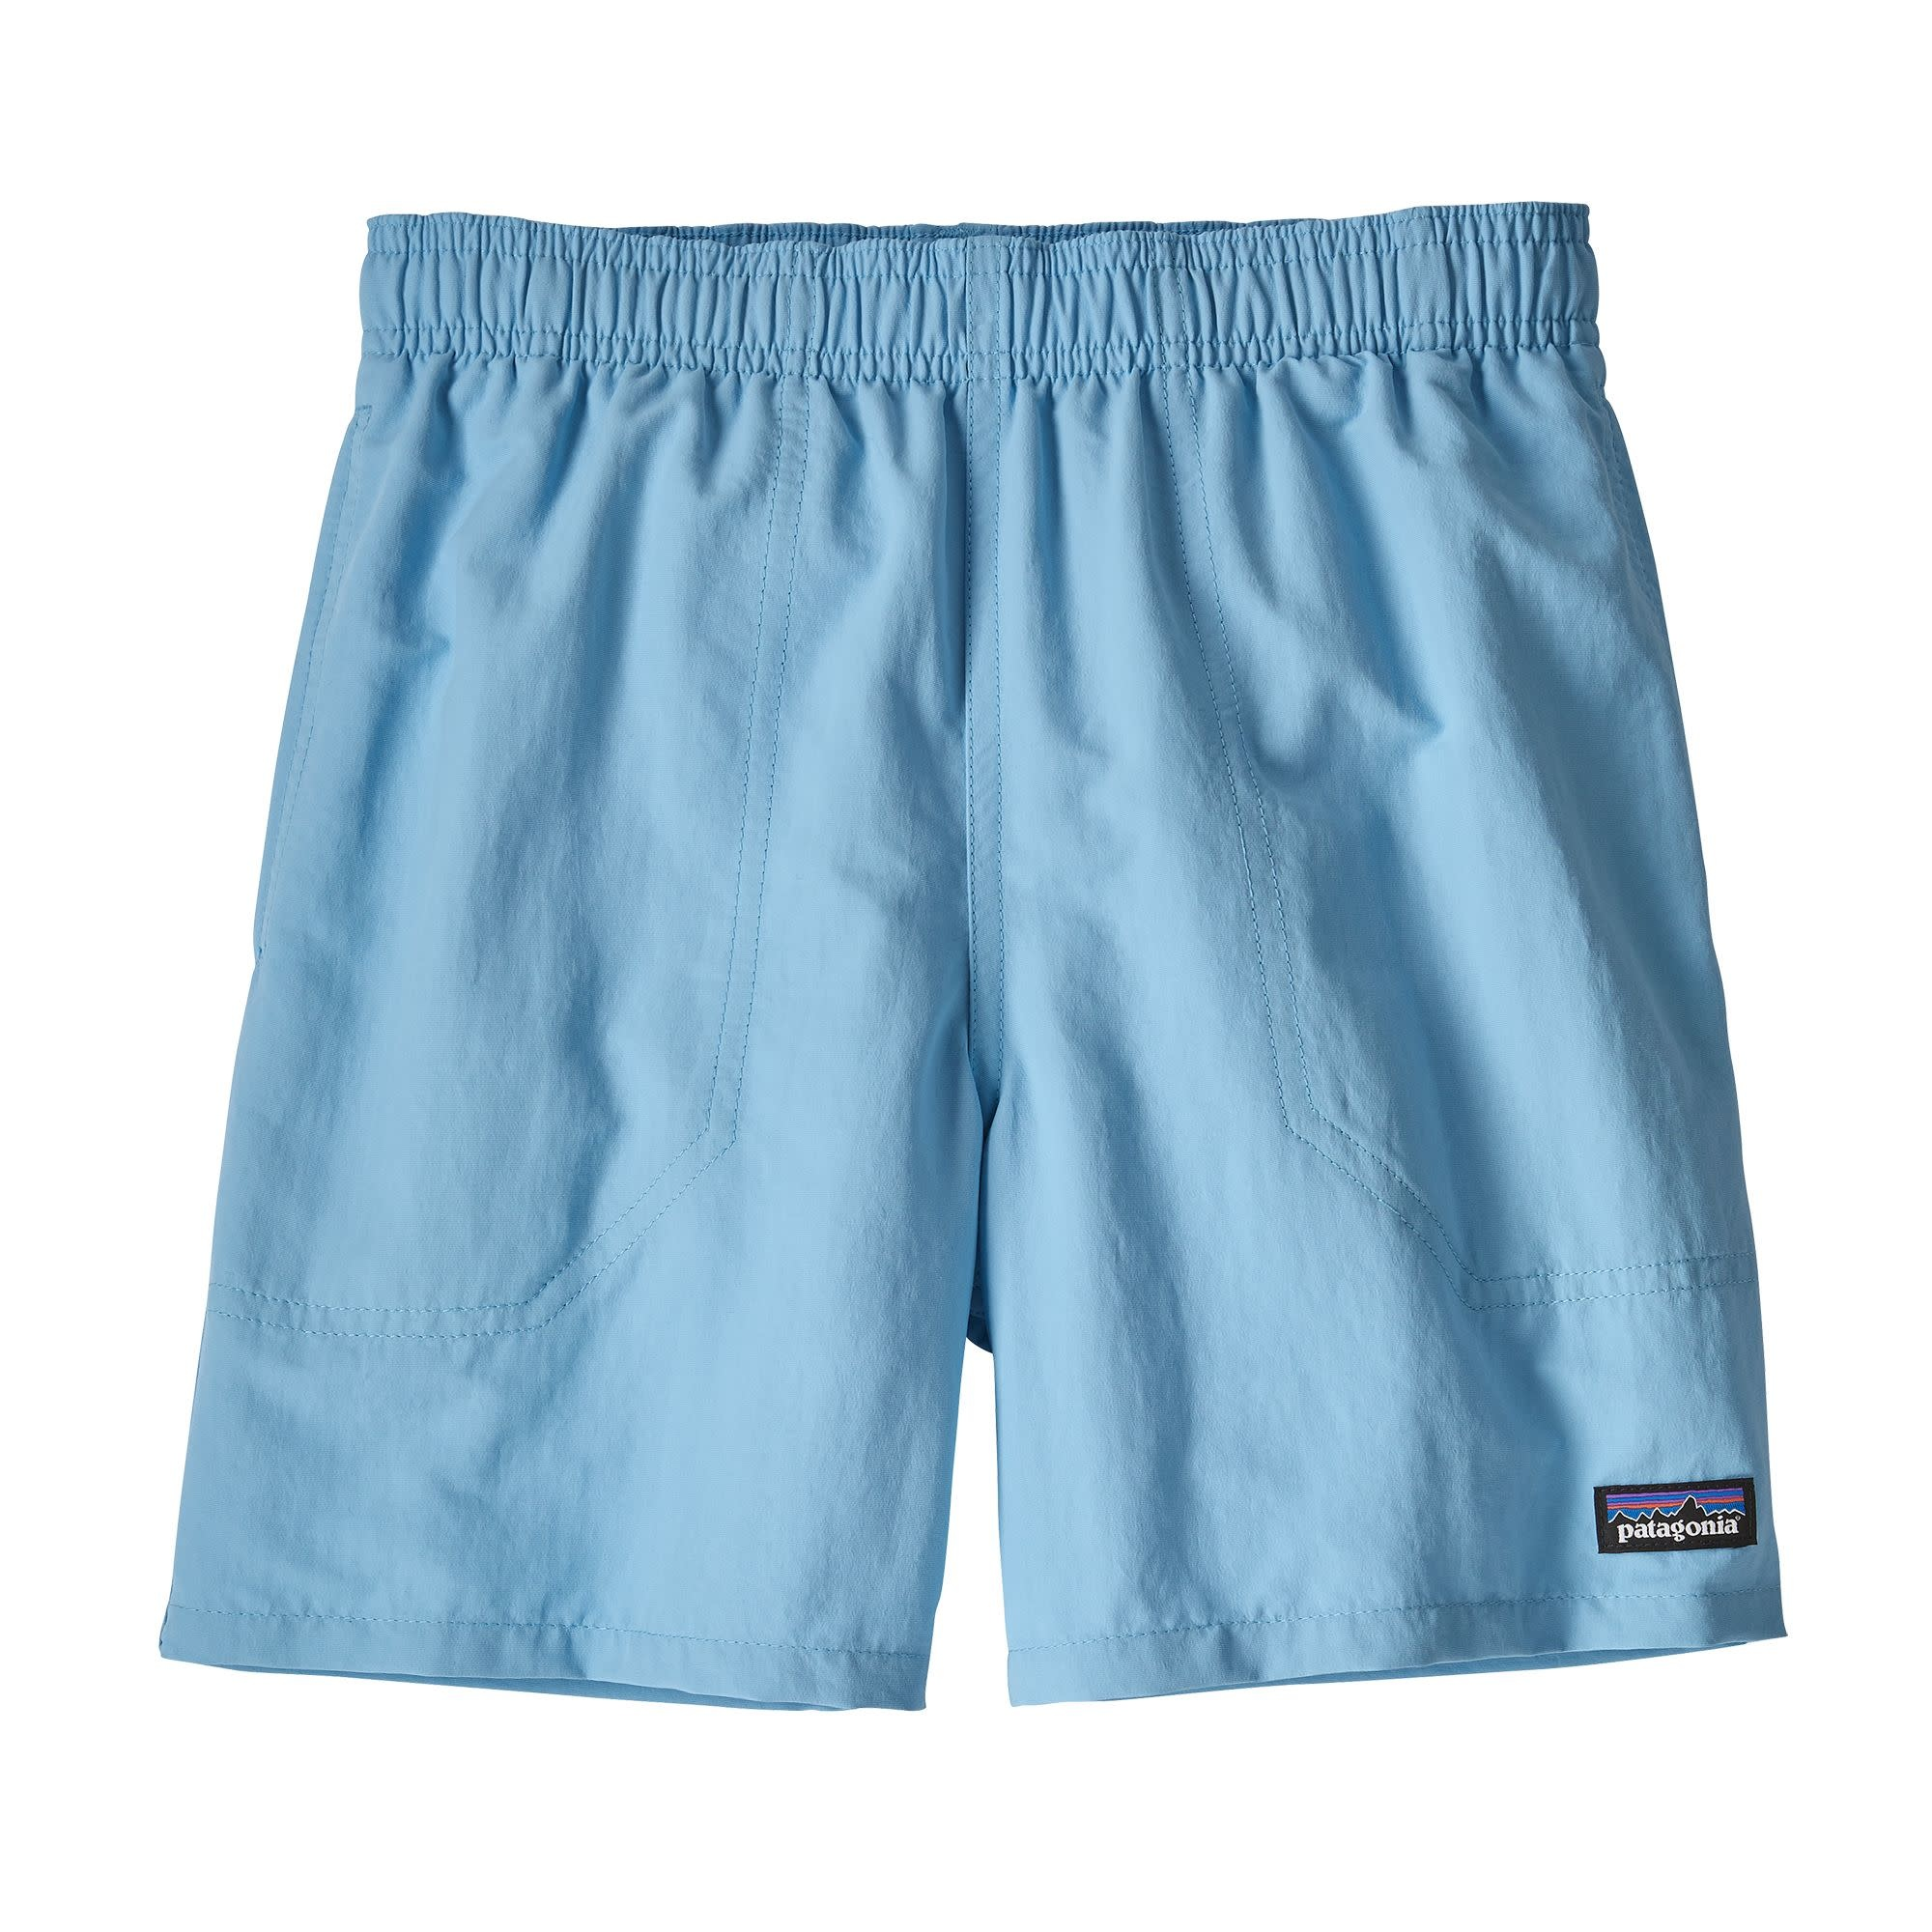 Patagonia Patagonia Boys' Baggies Short - 5""